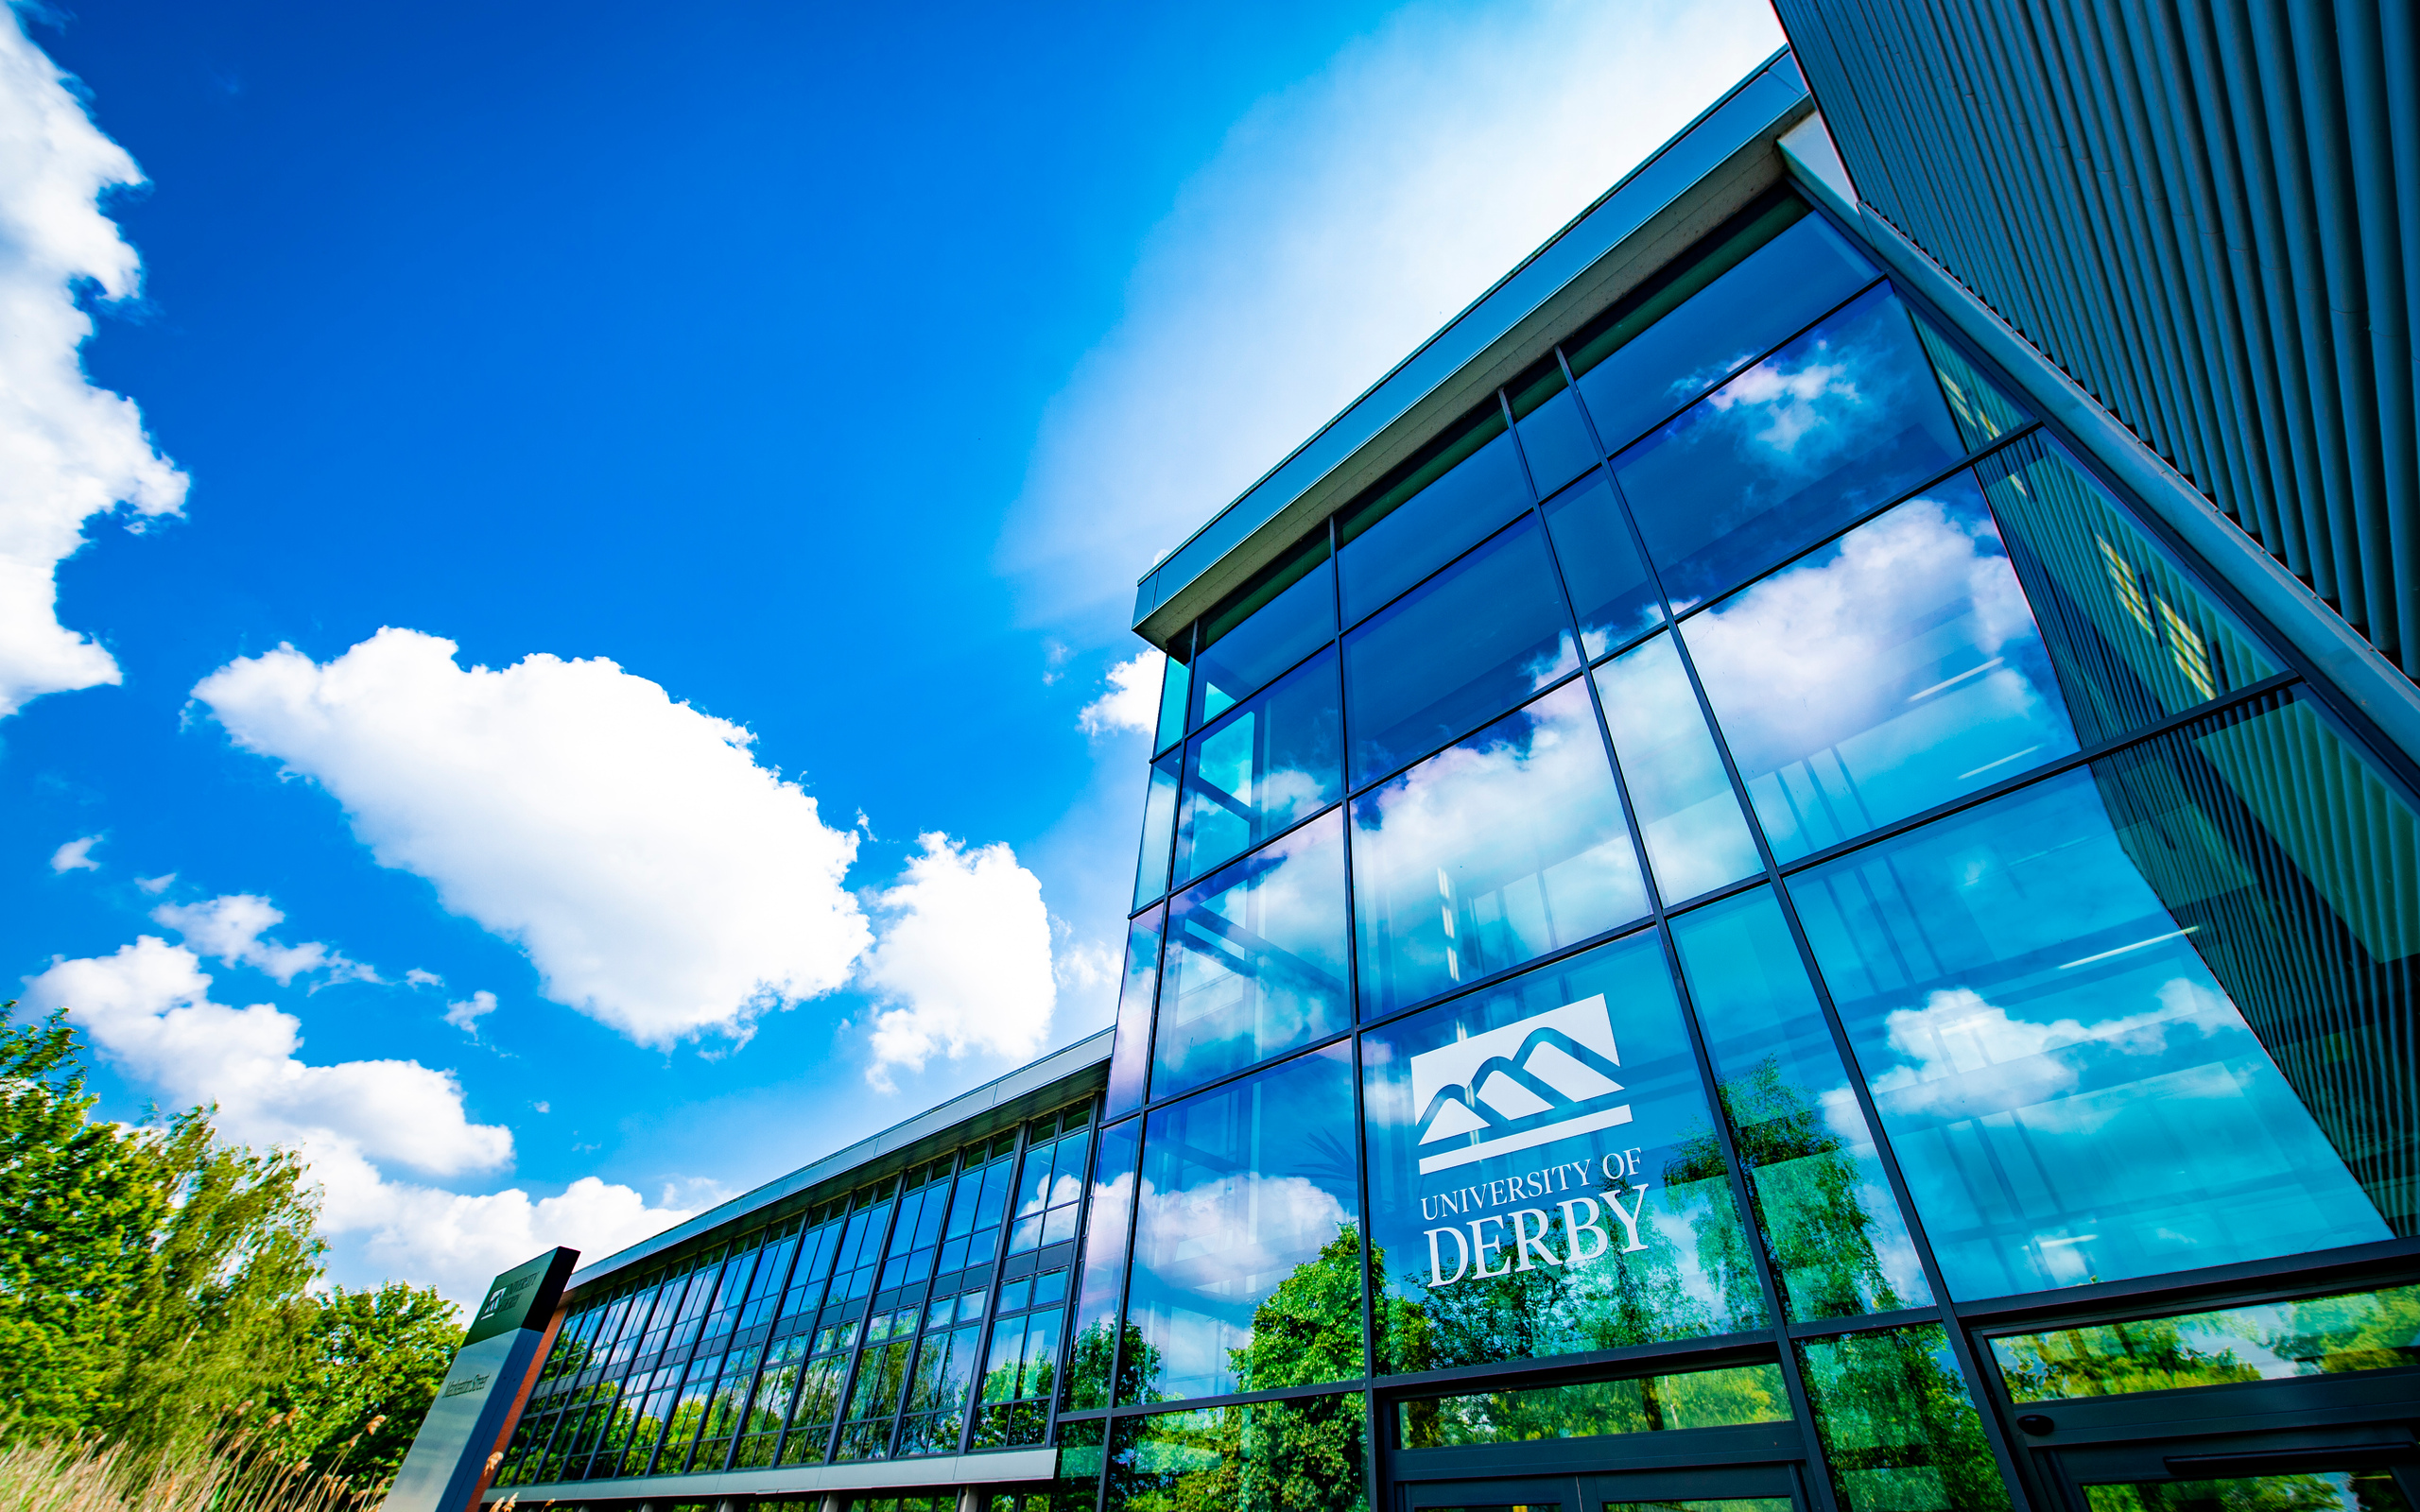 A reflection of the trees on the University of Derby's Markeaton Street building.